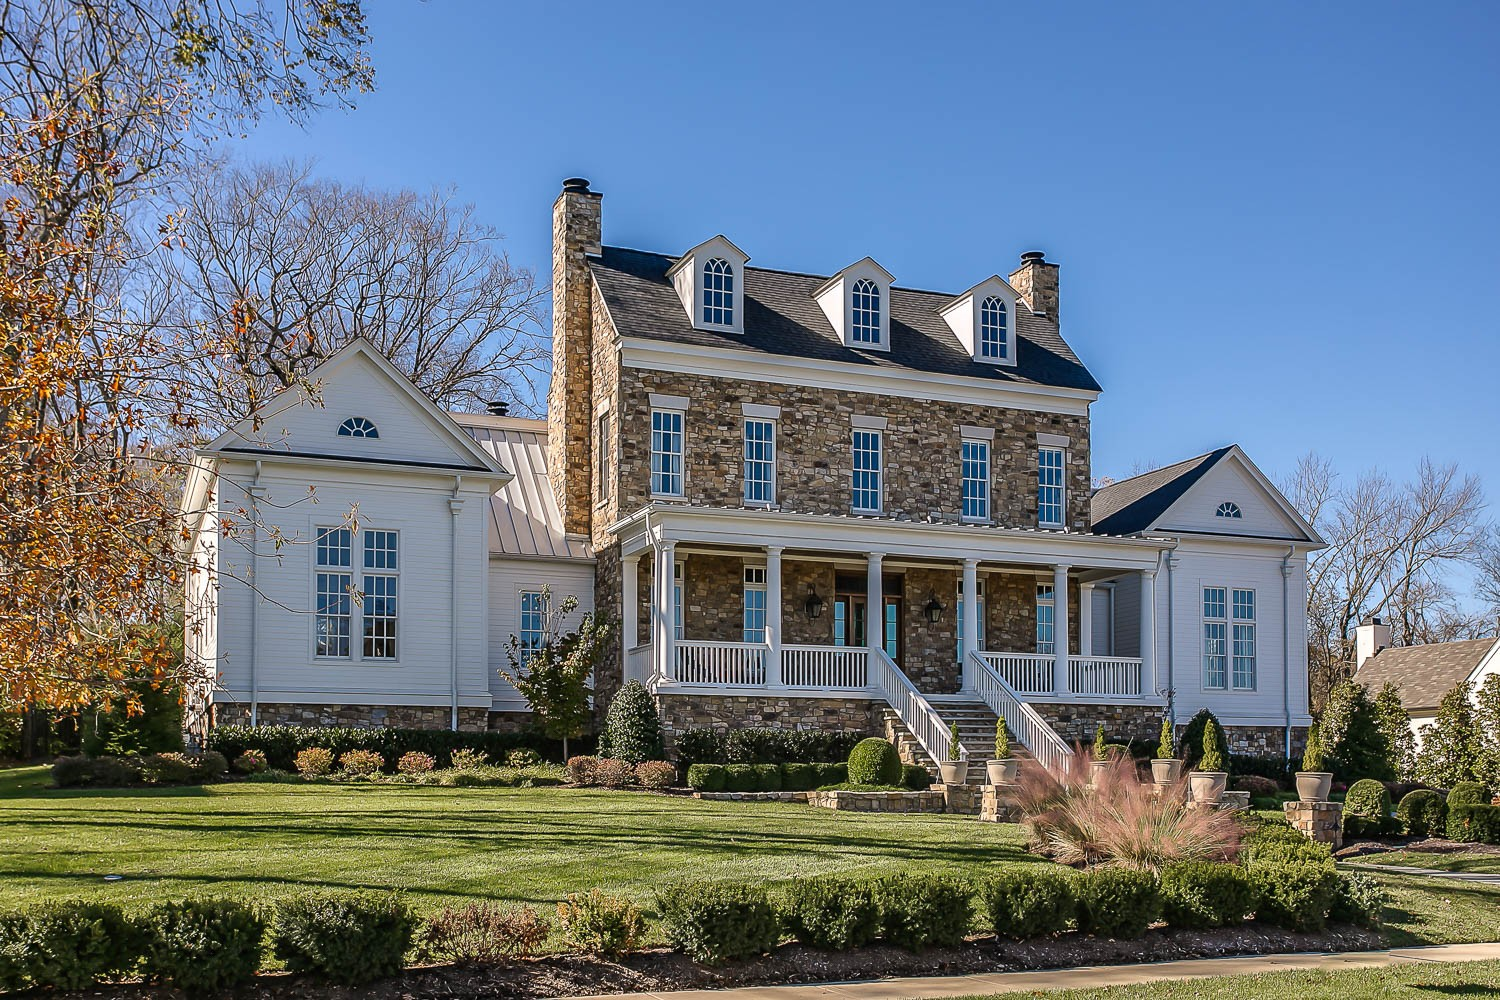 Capture the essence of TN with this former 2017 Parade of Homes Custom Beauty. Main level is complete with 2 suites, open-concept kitchen overlooking great room. Reclaimed barn wood throughout. Upstairs consists a true guest quarters w/ private kitchenette & bath, plus 3 additional ensuite bedrooms with a bonus room. Covered back porch offers backyard views of the historic Holt-Witherspoon property. Not a single detail has been overlooked!